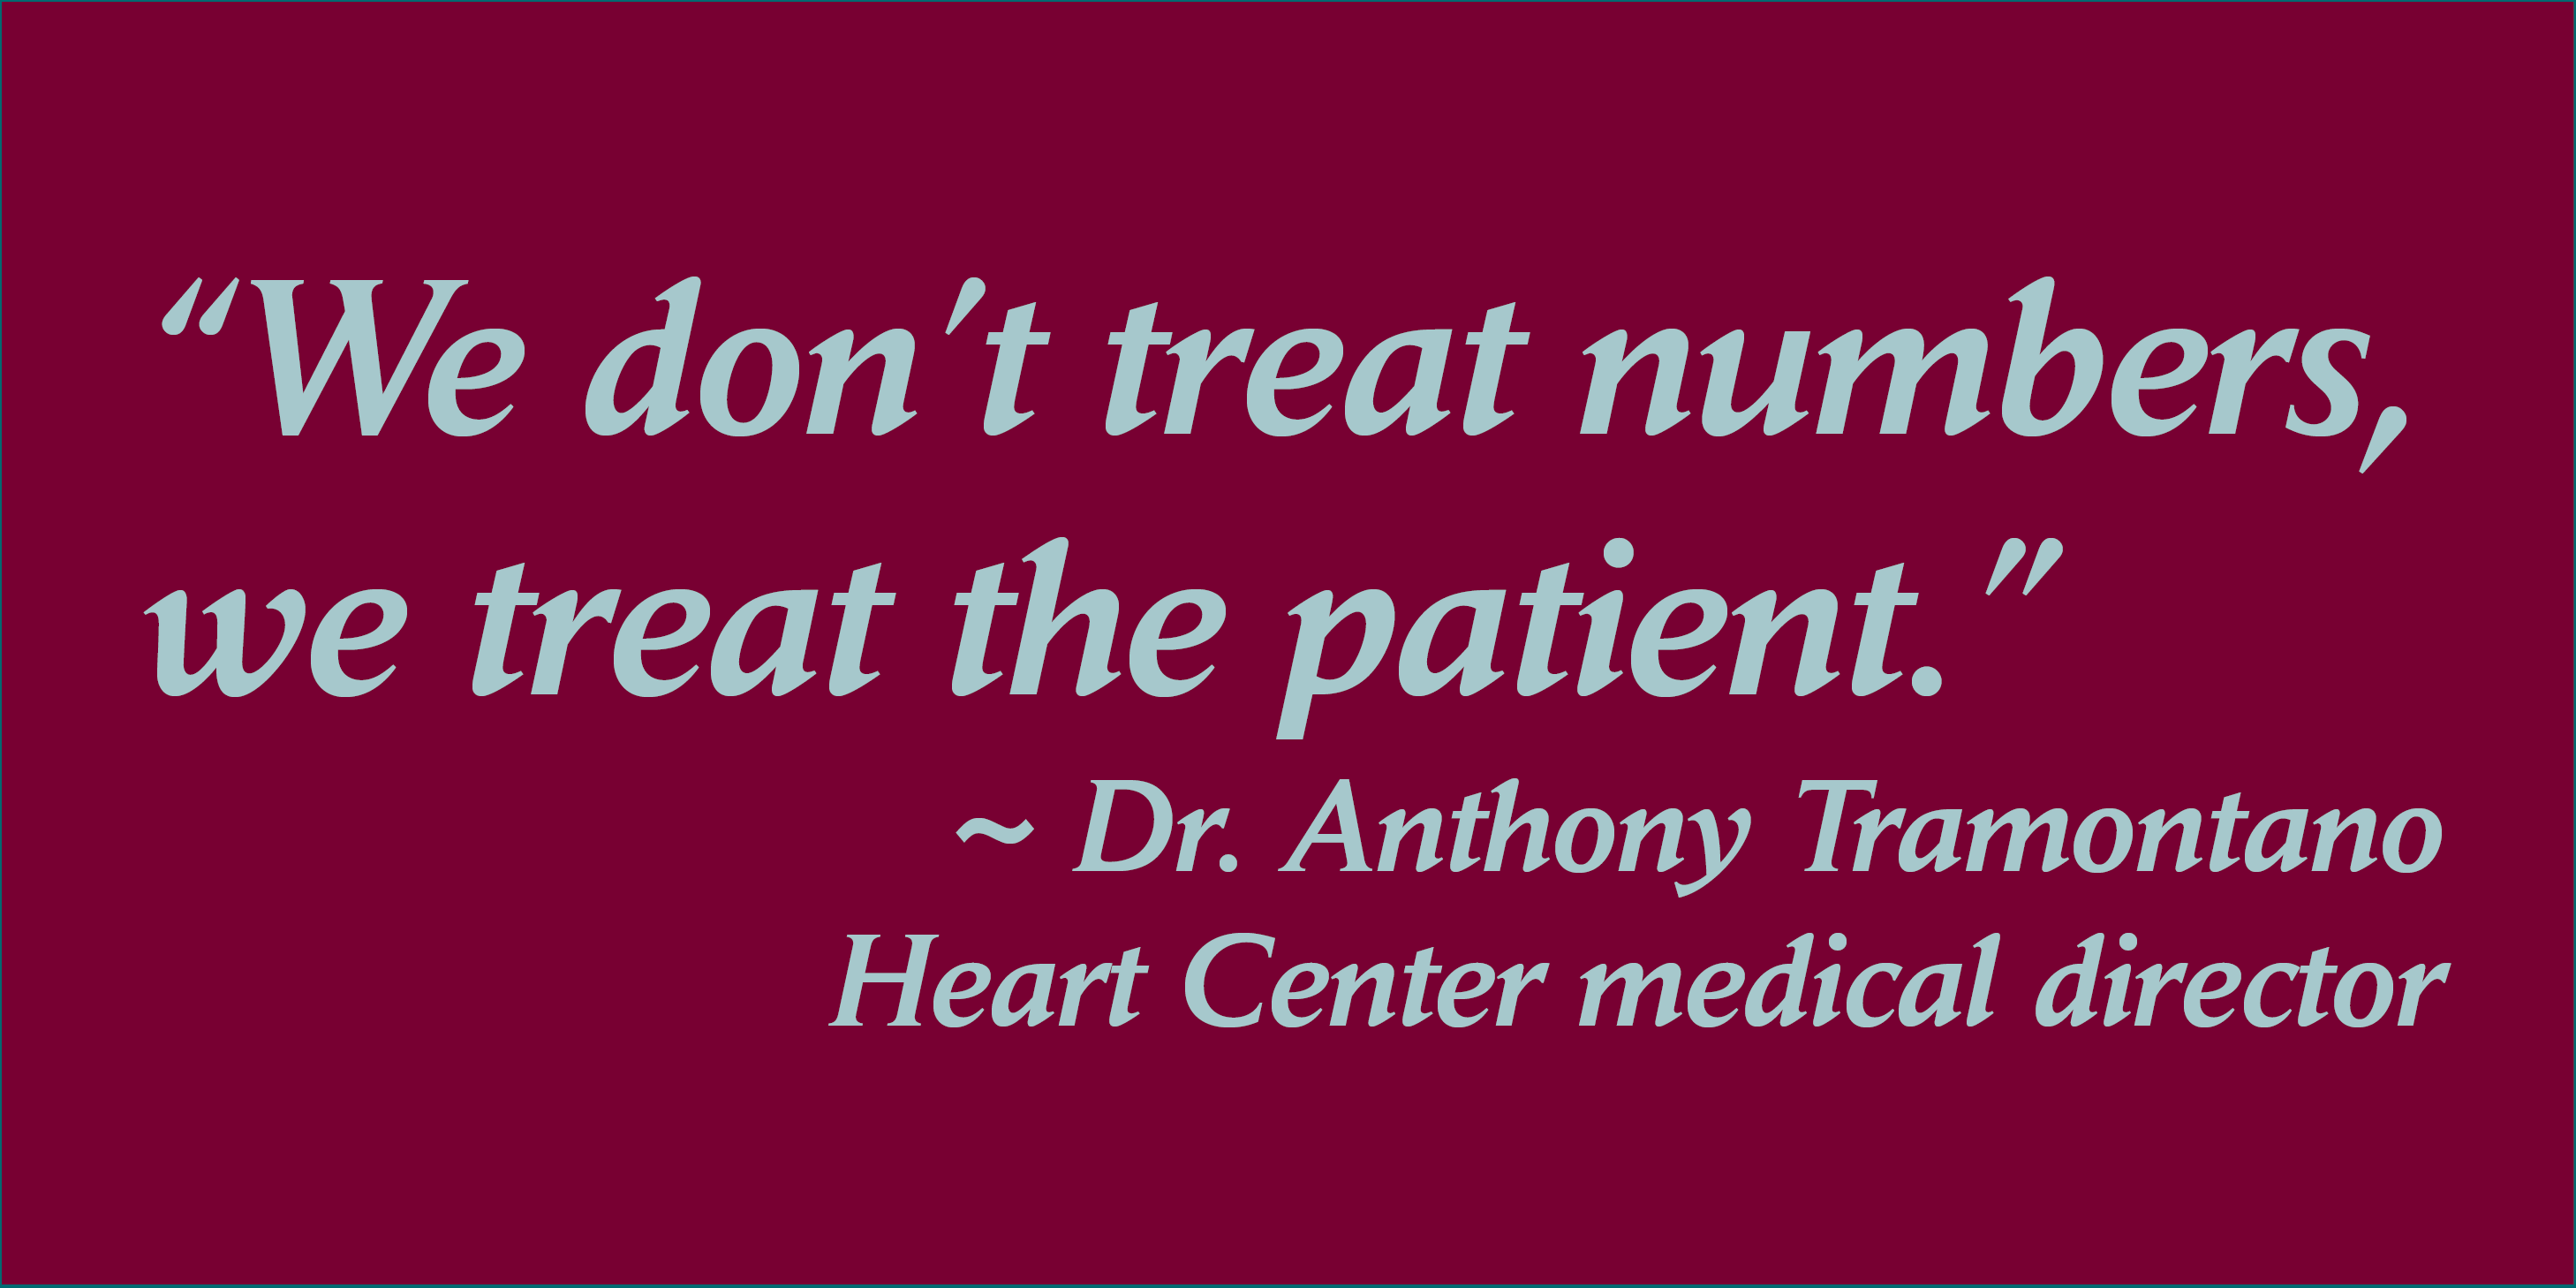 "Quote from Heart Center Medical Director Dr. Anthony Tramontano: ""We don't treat numbers, we treat the patient."""